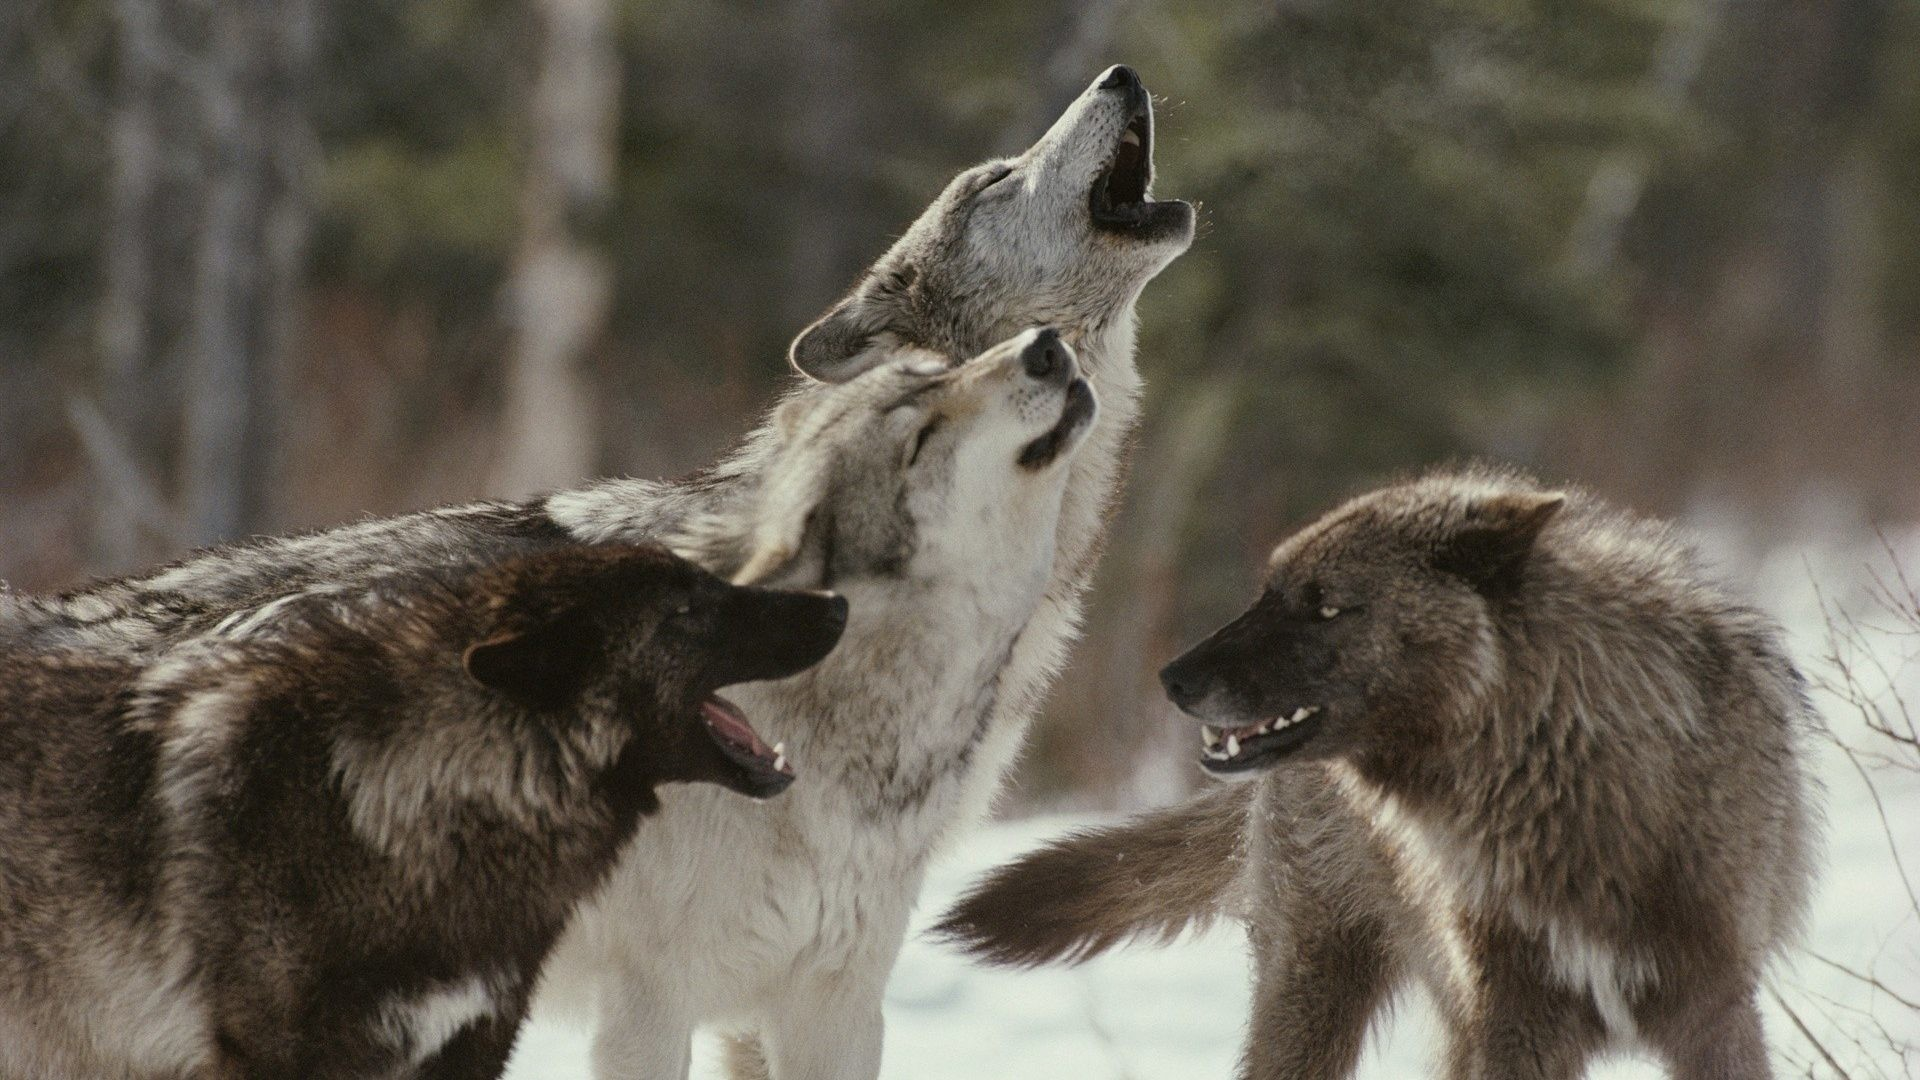 1920x1080 Wolves Tag - Snow Predator Wildlife Fangs Fur Trees Winter Muzzle Howl  Animals Emotion Forest Mood